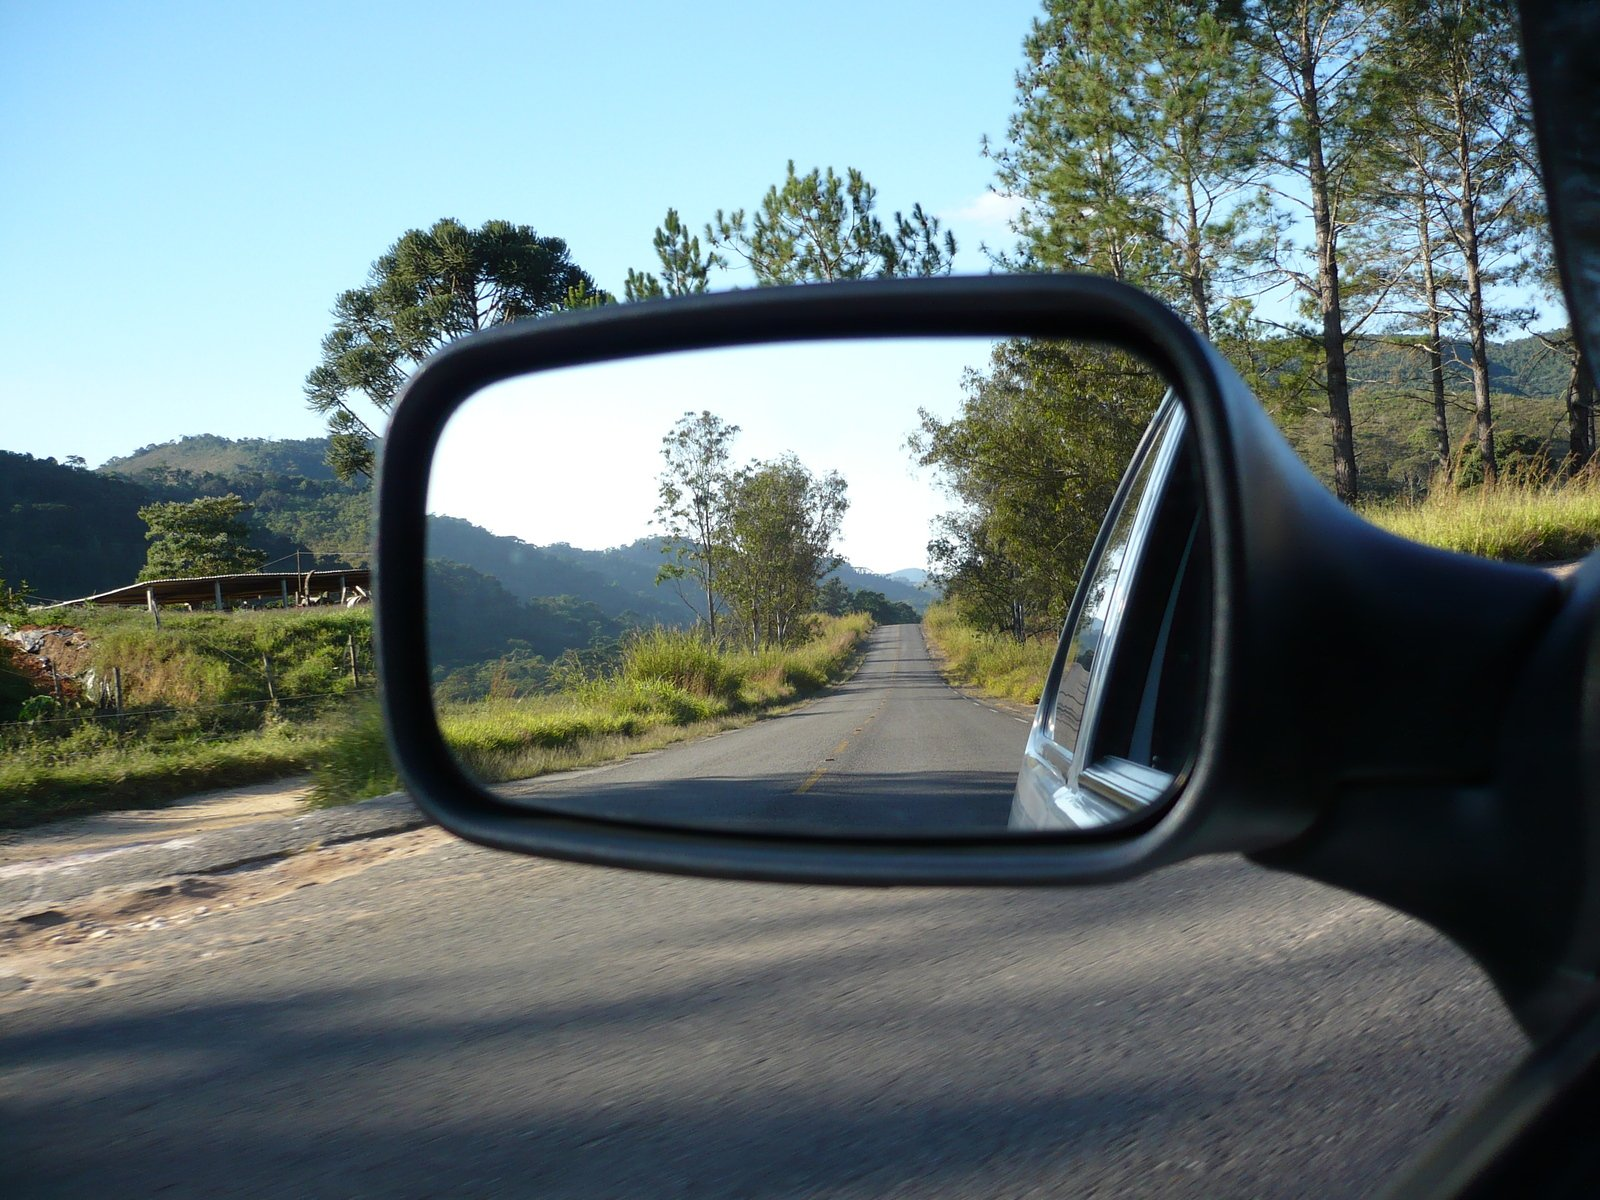 Free Road on Rear view mirror Stock Photo - FreeImages.com